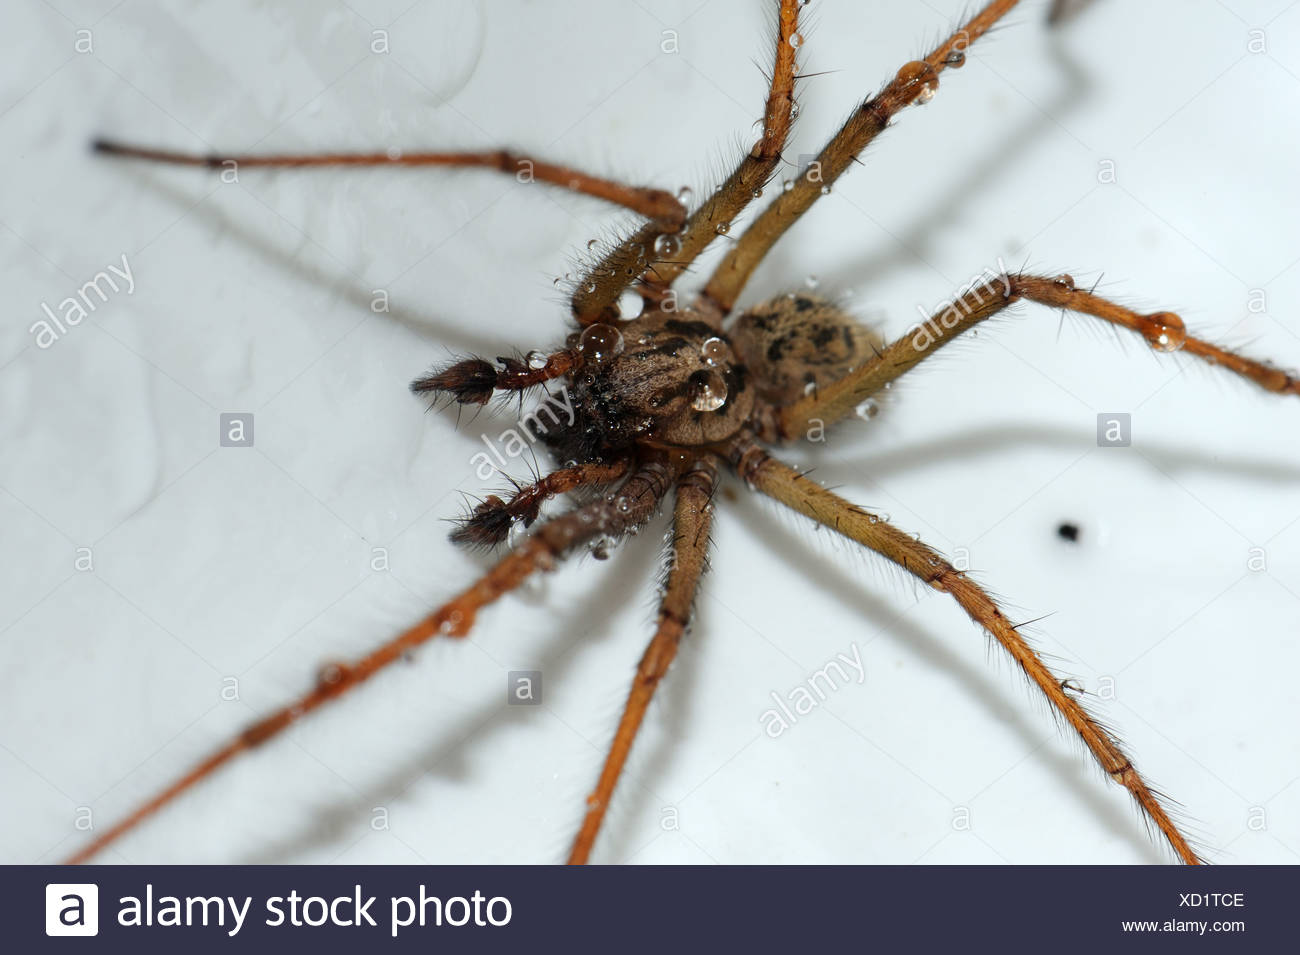 House spider (Tegenaria gigantea) in a kitchen sink and slightly wet - Stock Image